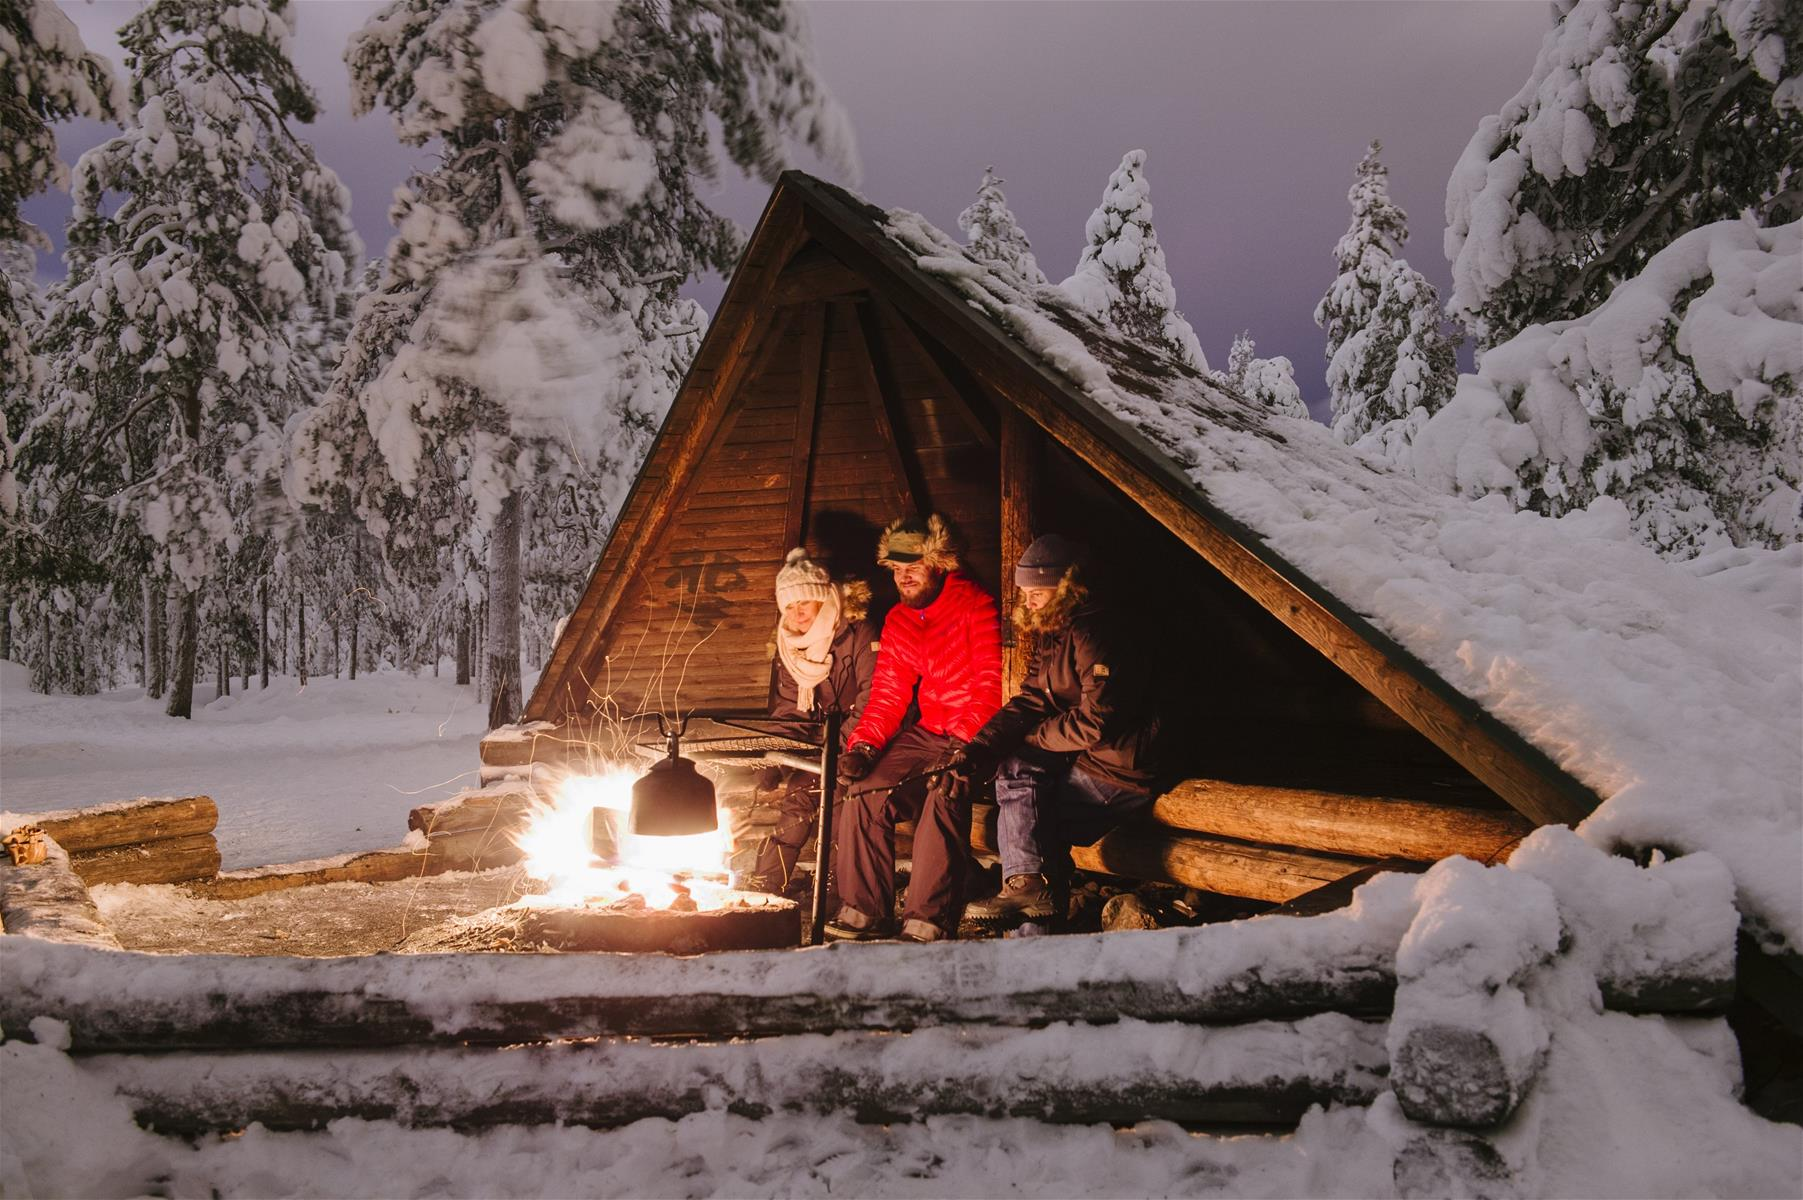 Frying Sausages by open fire in winter in Rovaniemi Lapland Finland (2).jpg